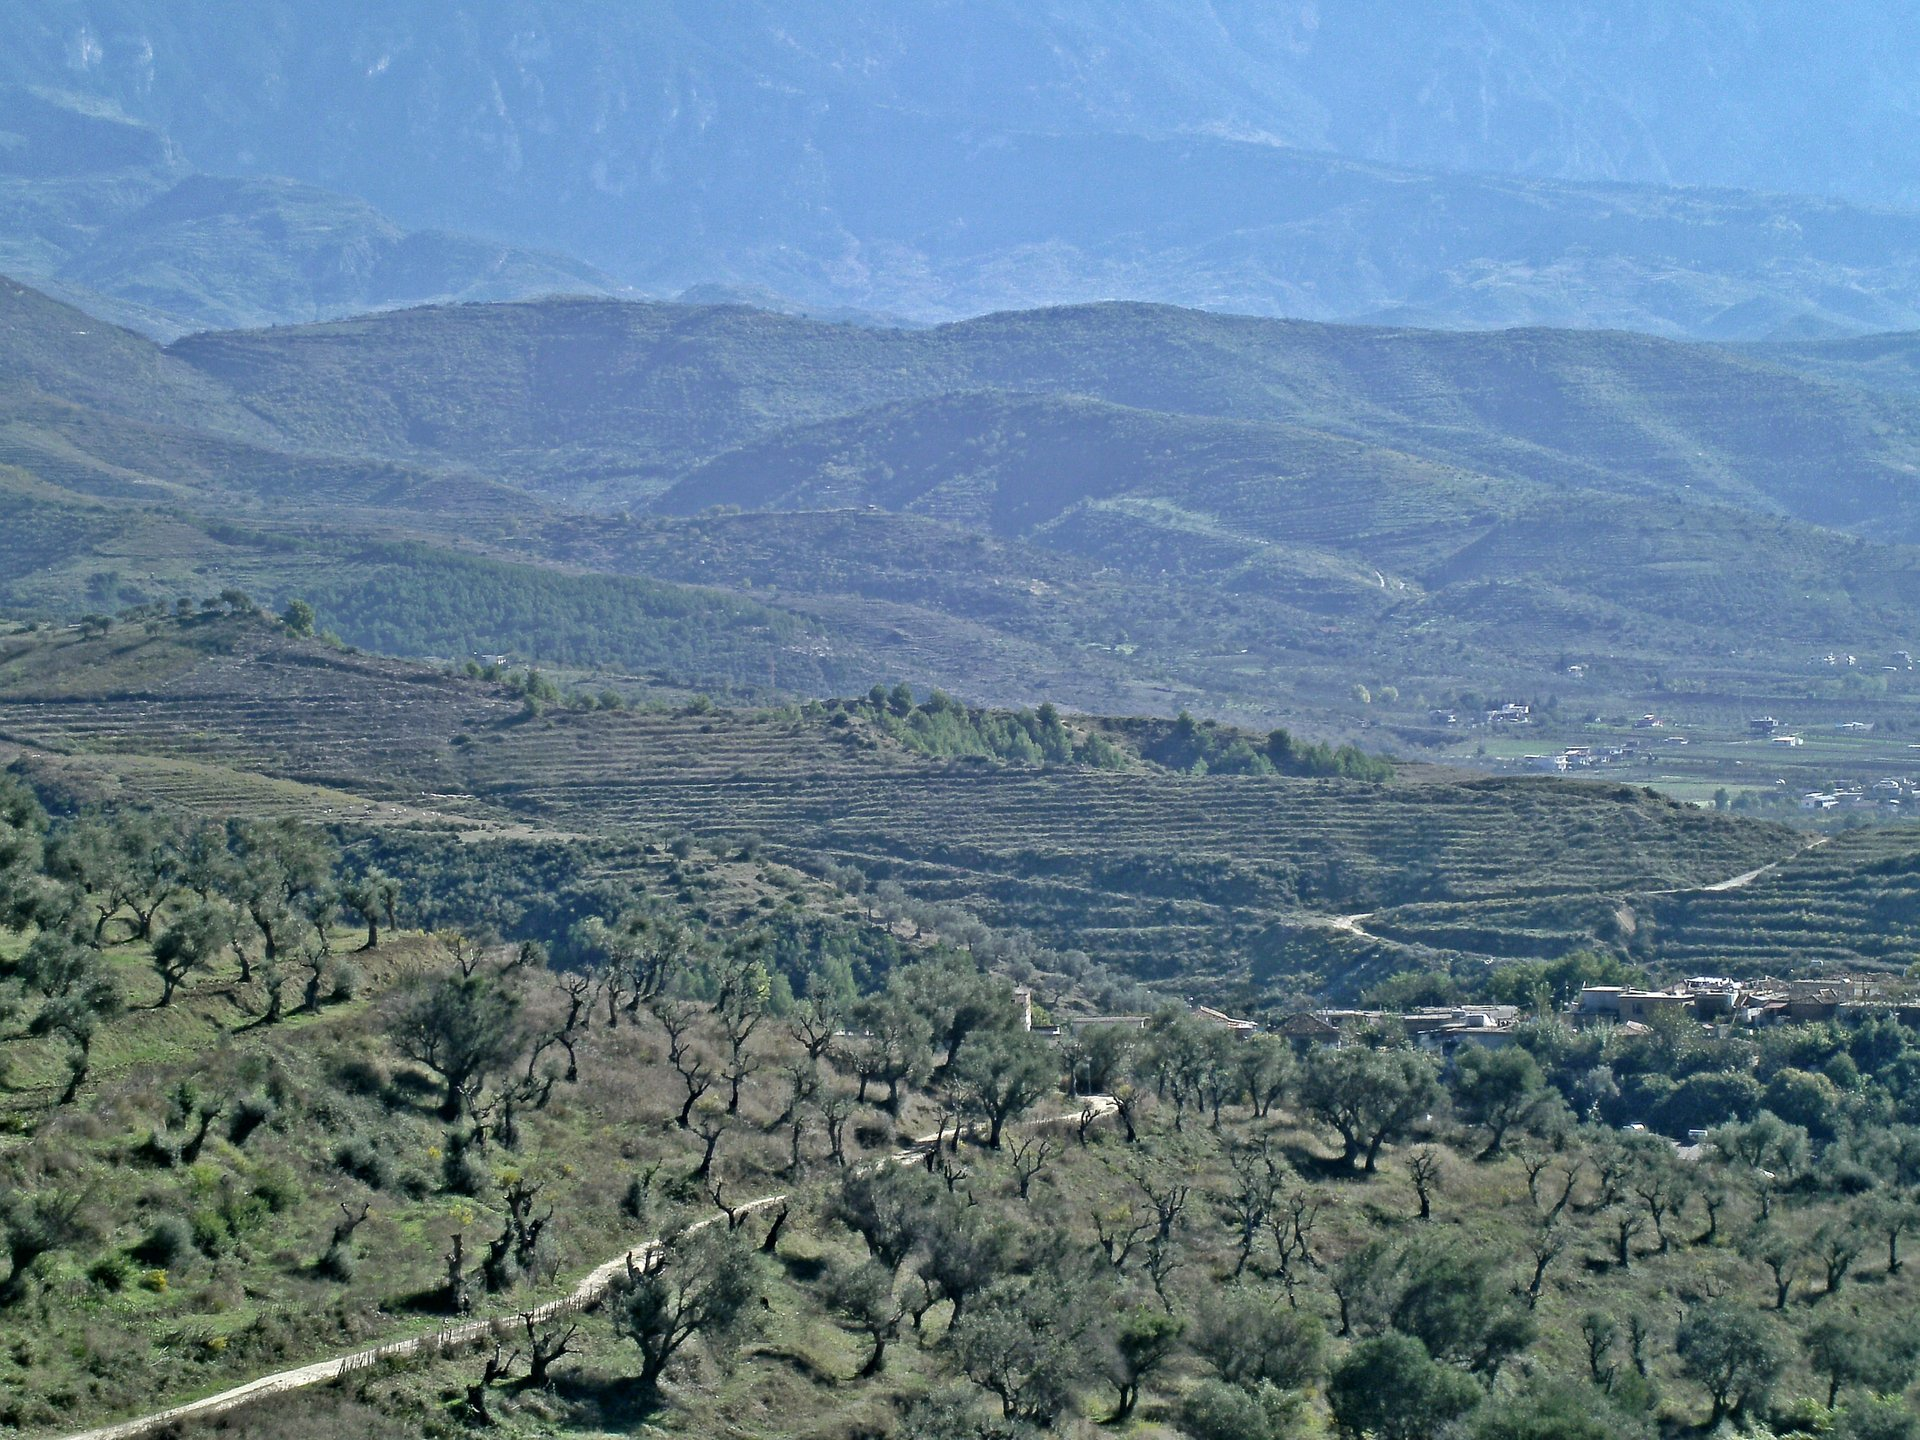 Olive groves and mountains, Berat, Albania 2020